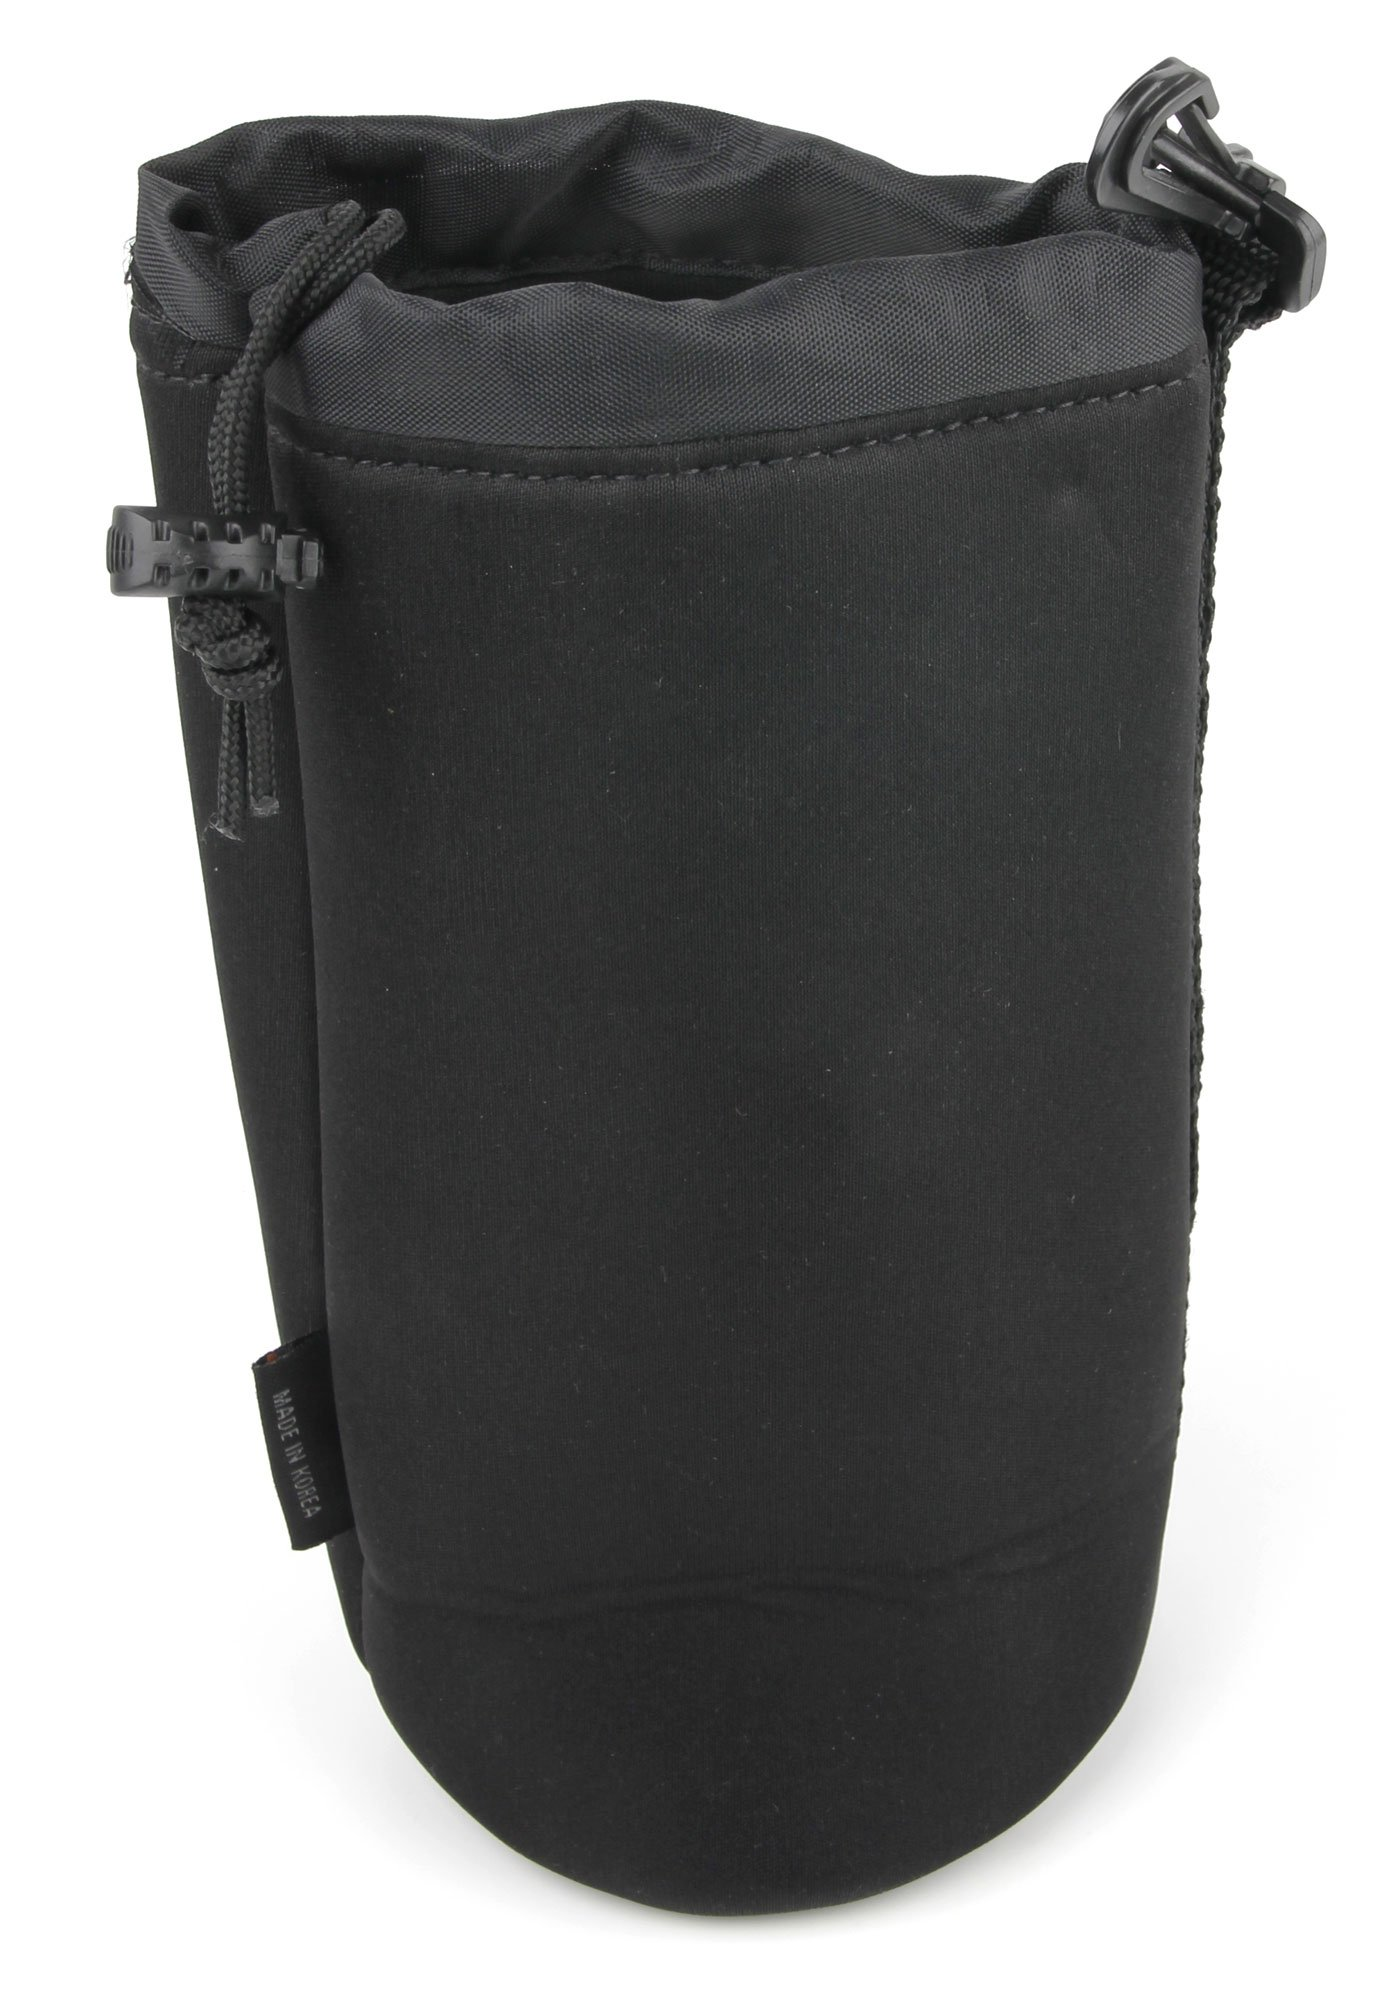 Duragadget Padded Pouch Sleeve Case In Black With Belt